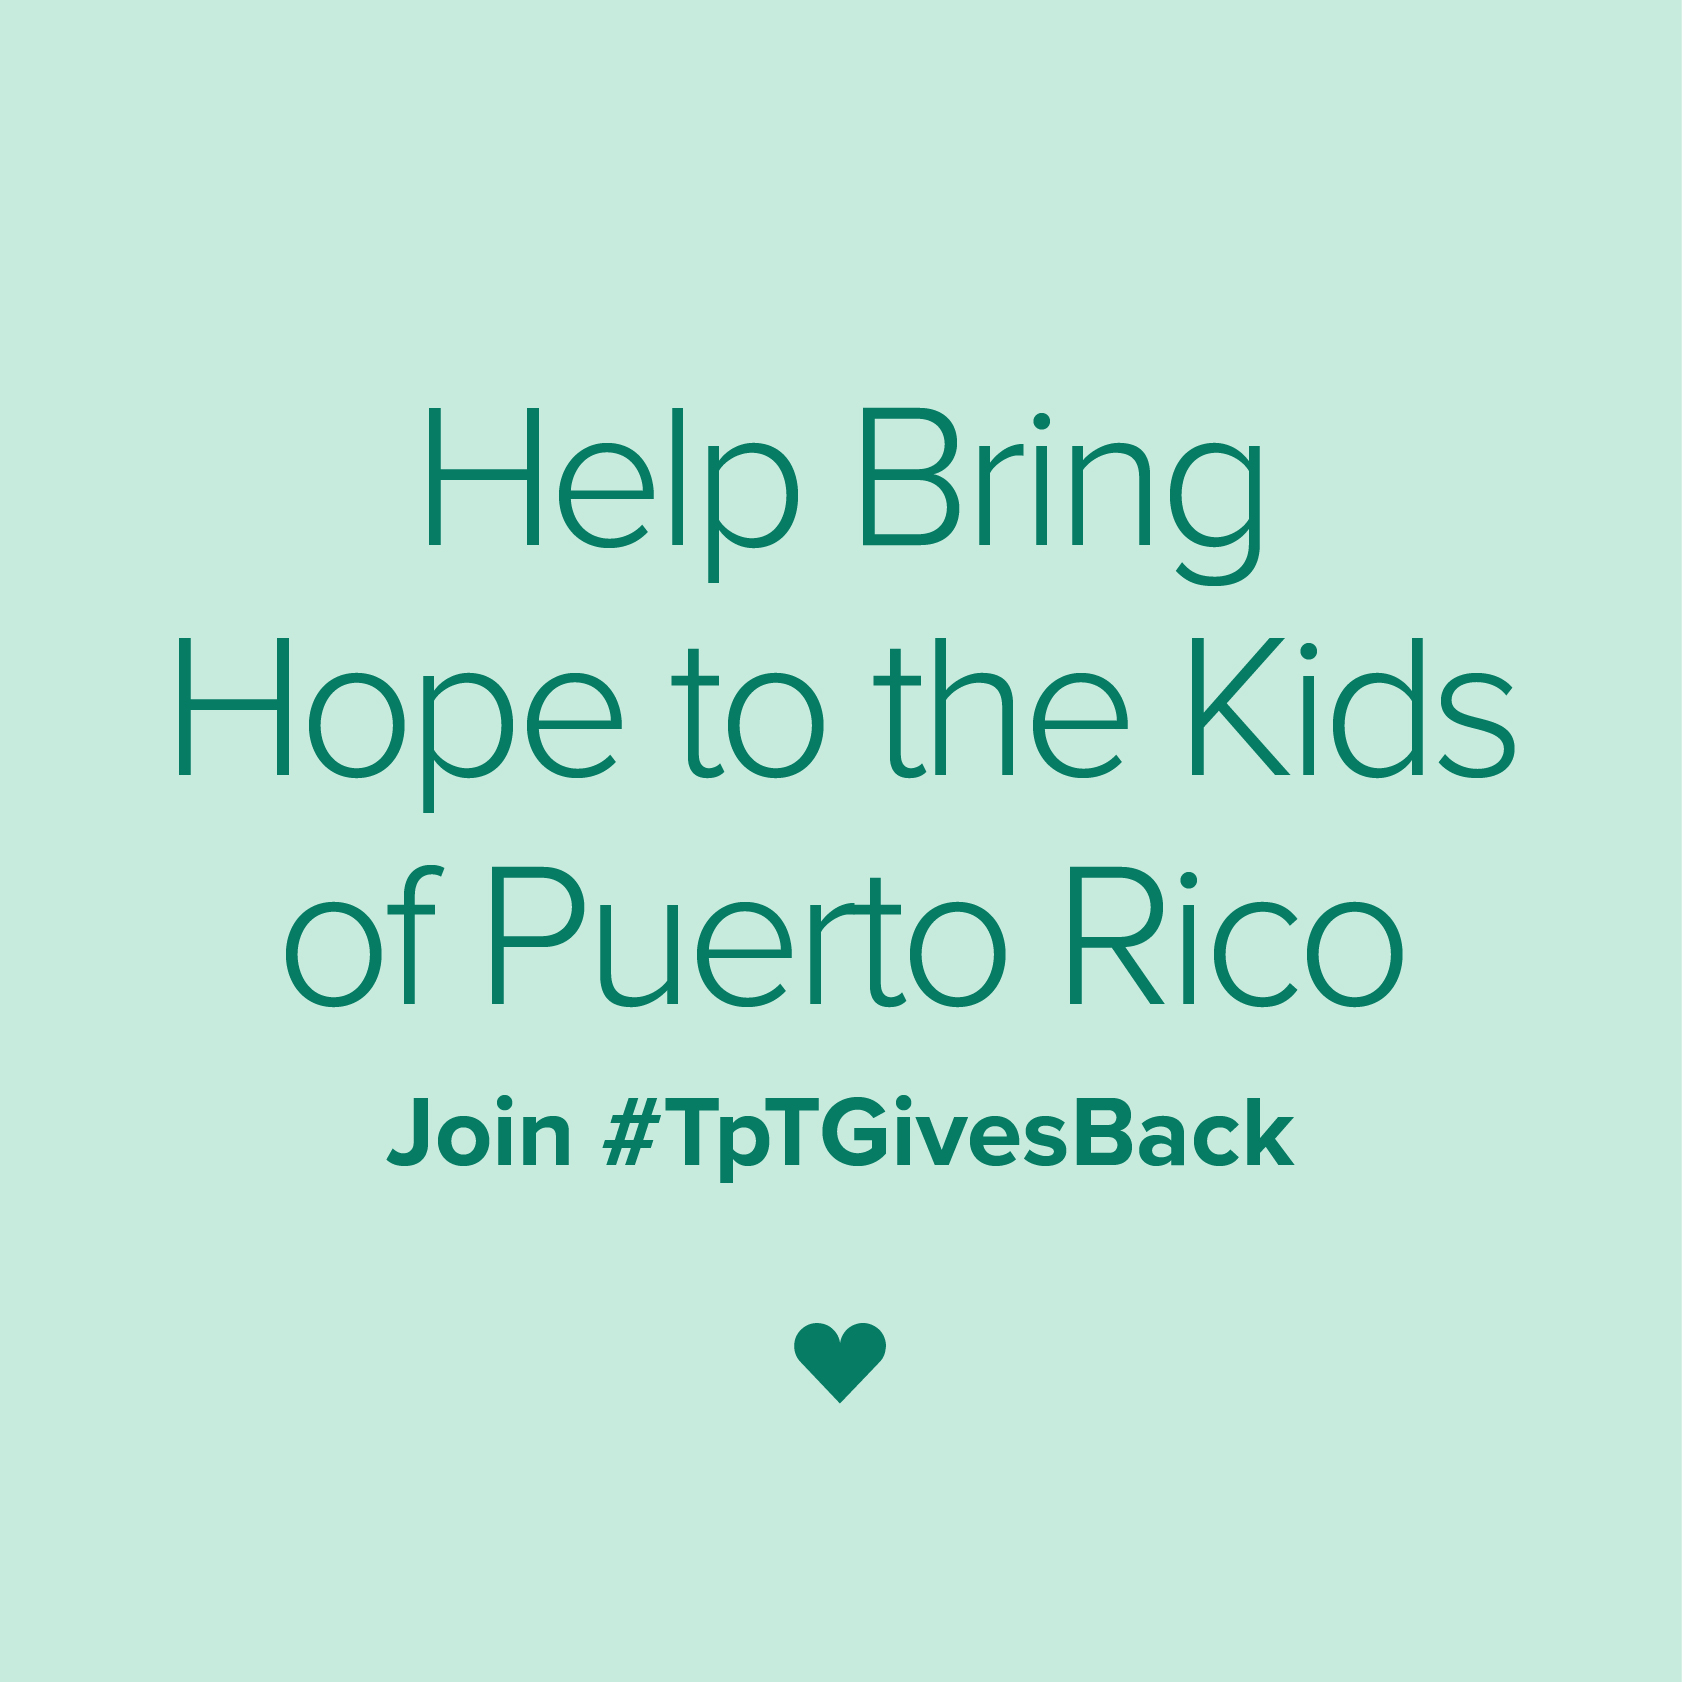 #TpTGivesBack to the Kids of Puerto Rico